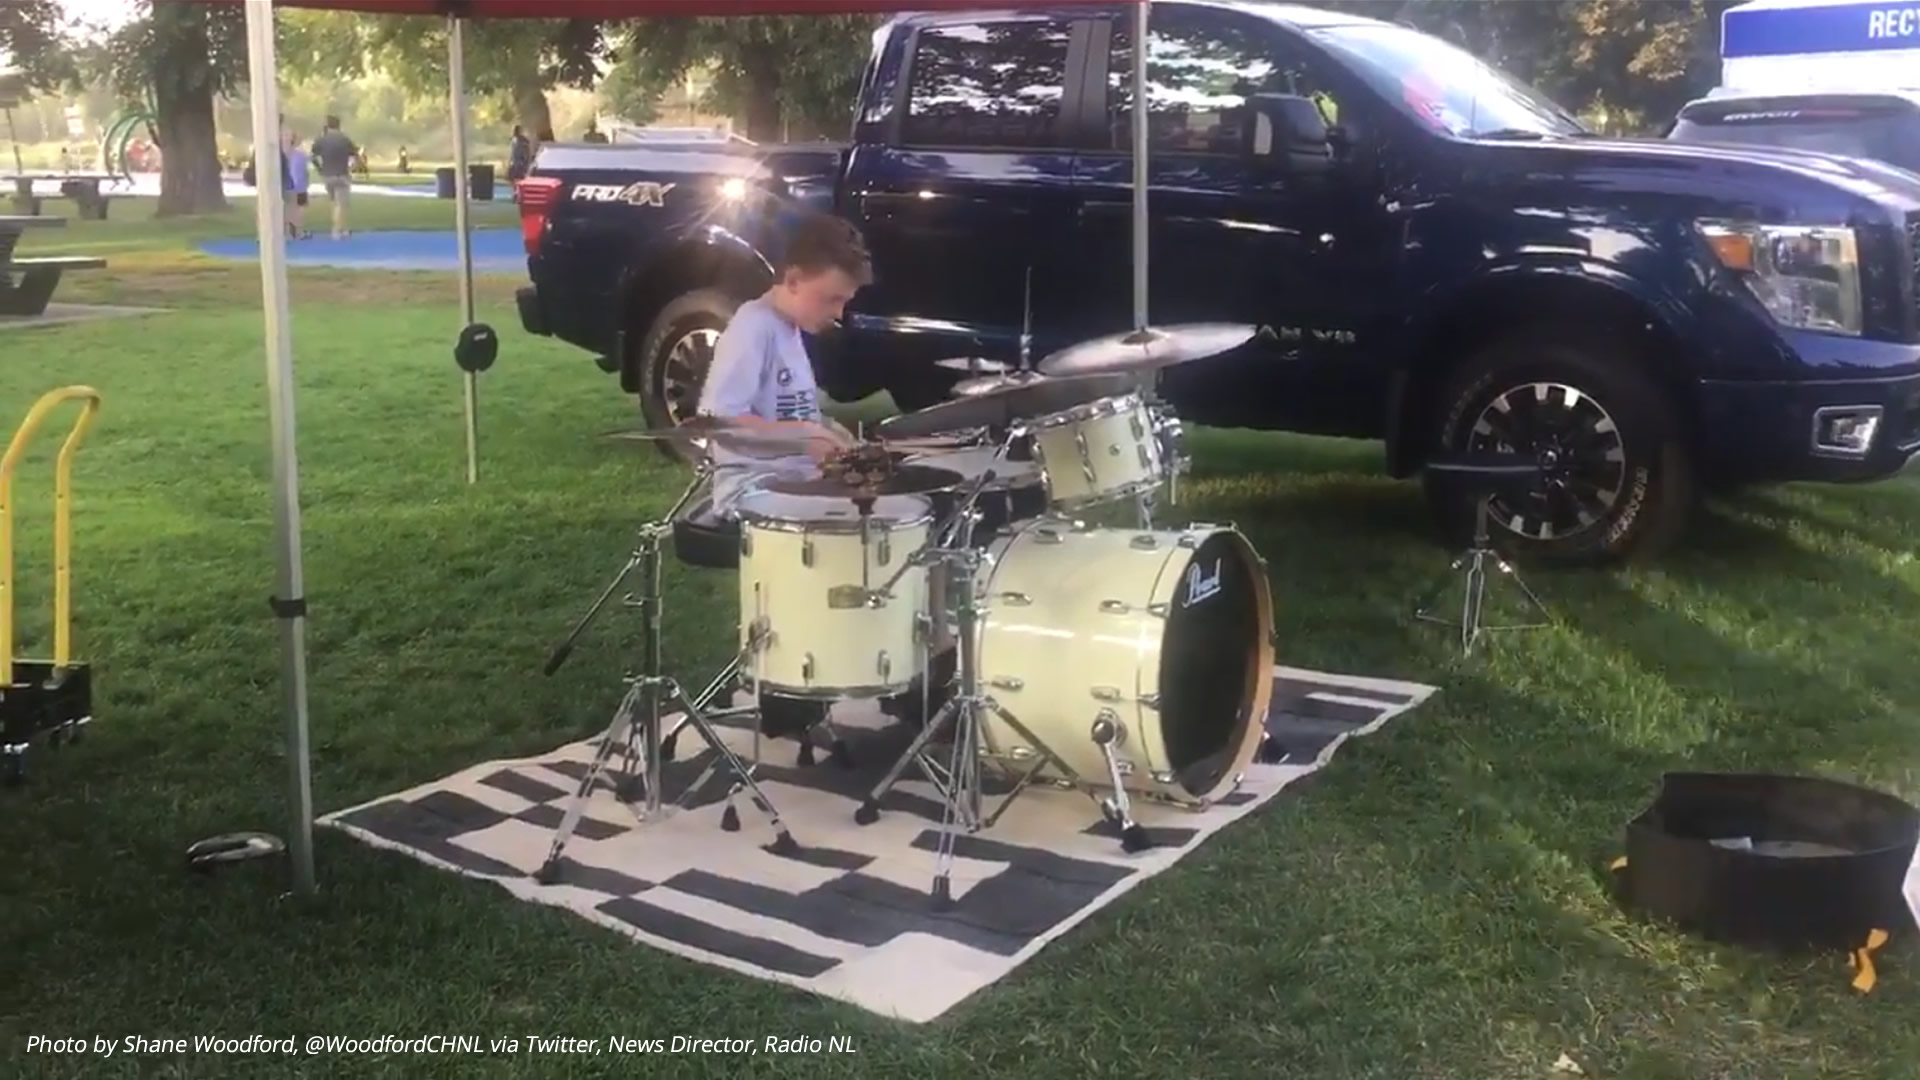 Why Learning To Play The Drums Is Exciting, Fun, And Good